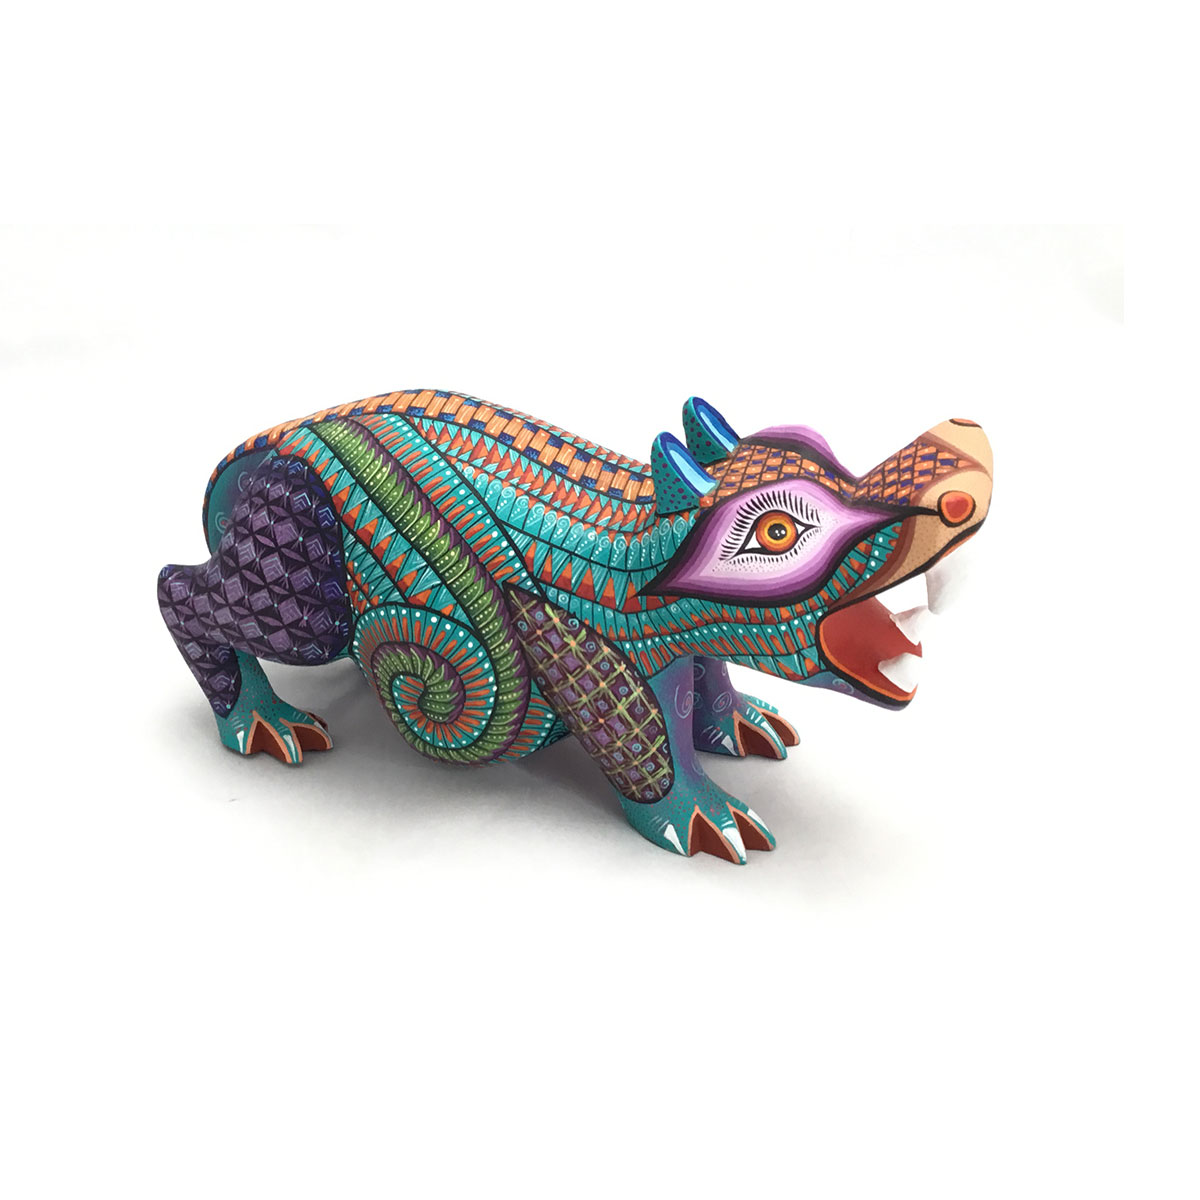 Ivan Fuentes & Mayte Calvo Ivan Fuentes & Mayte Calvo: Small Colorful Hippo African Animals